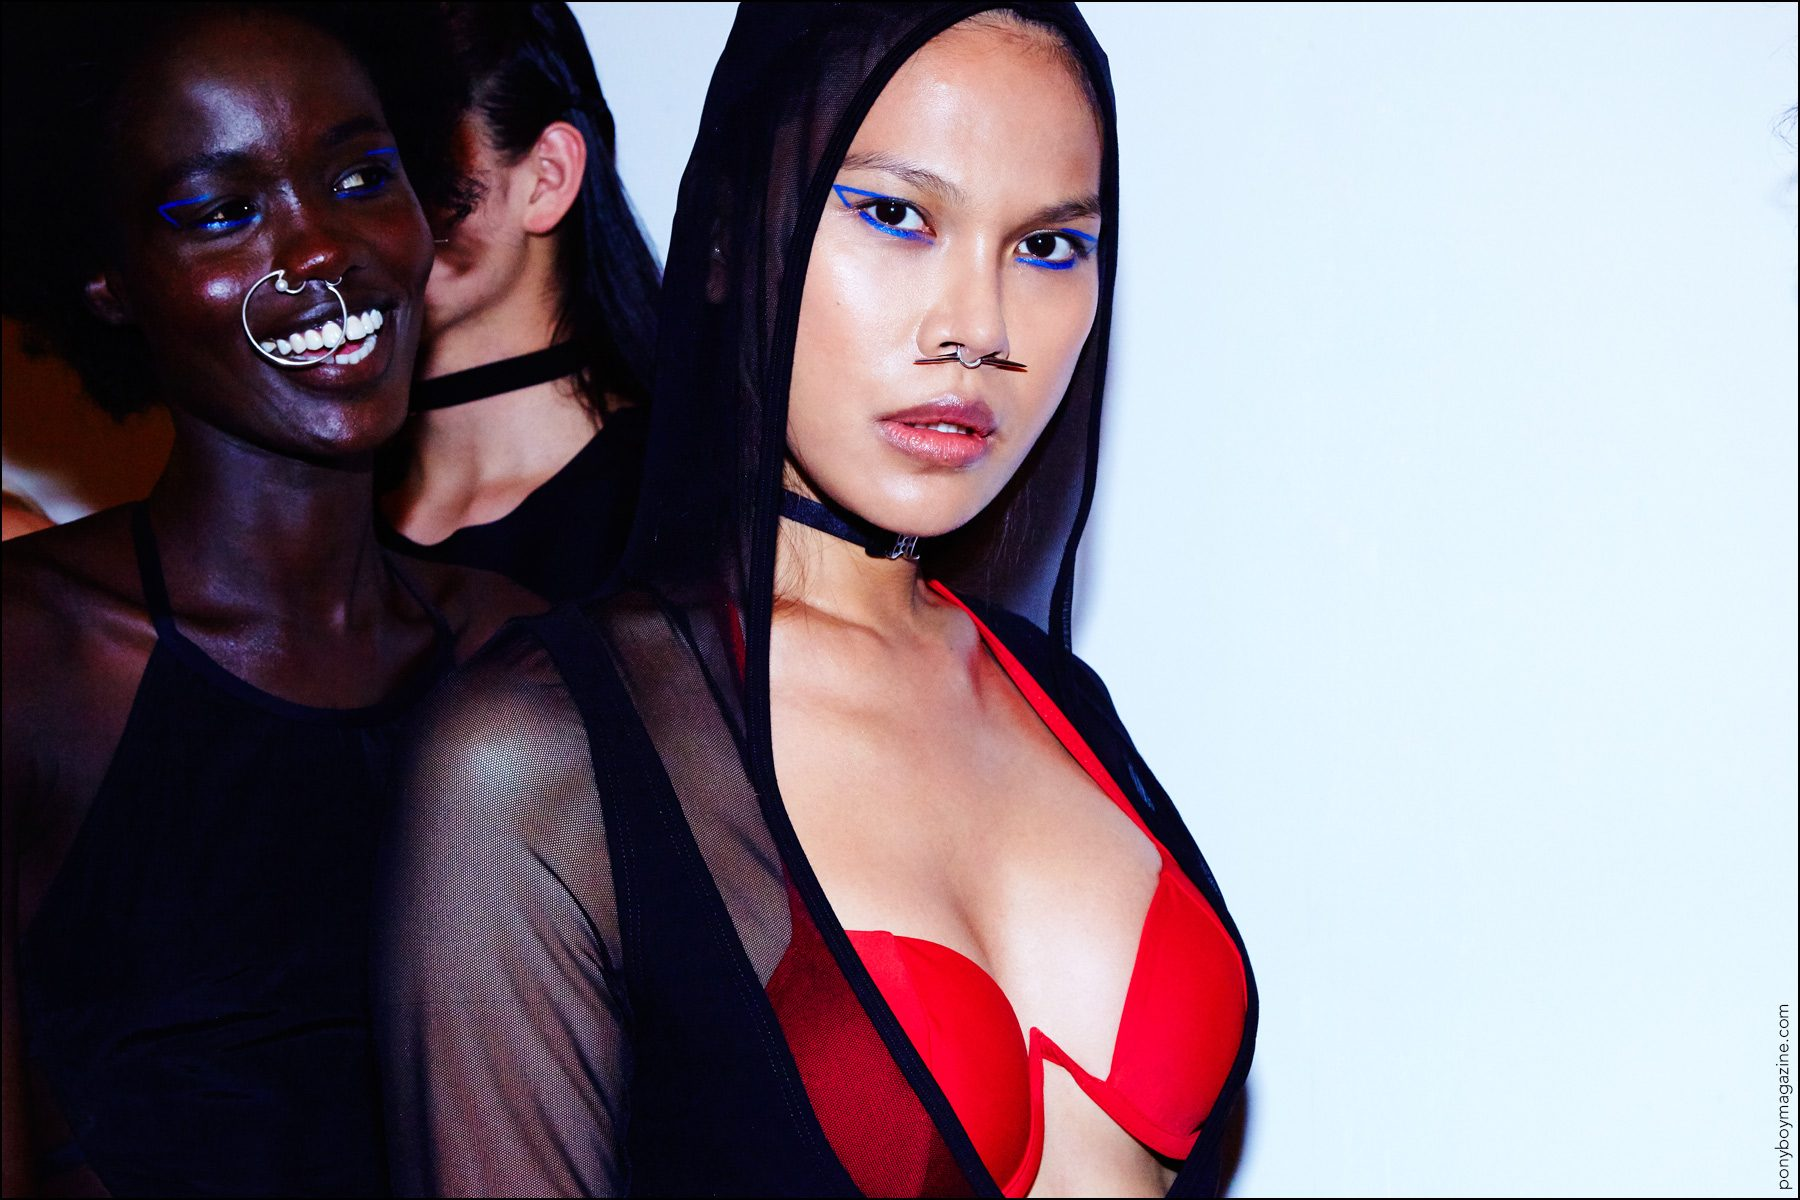 Models snapped backstage before walking for Chromat S/S17. Photographed for Ponyboy magazine NYby Alexander Thompson.